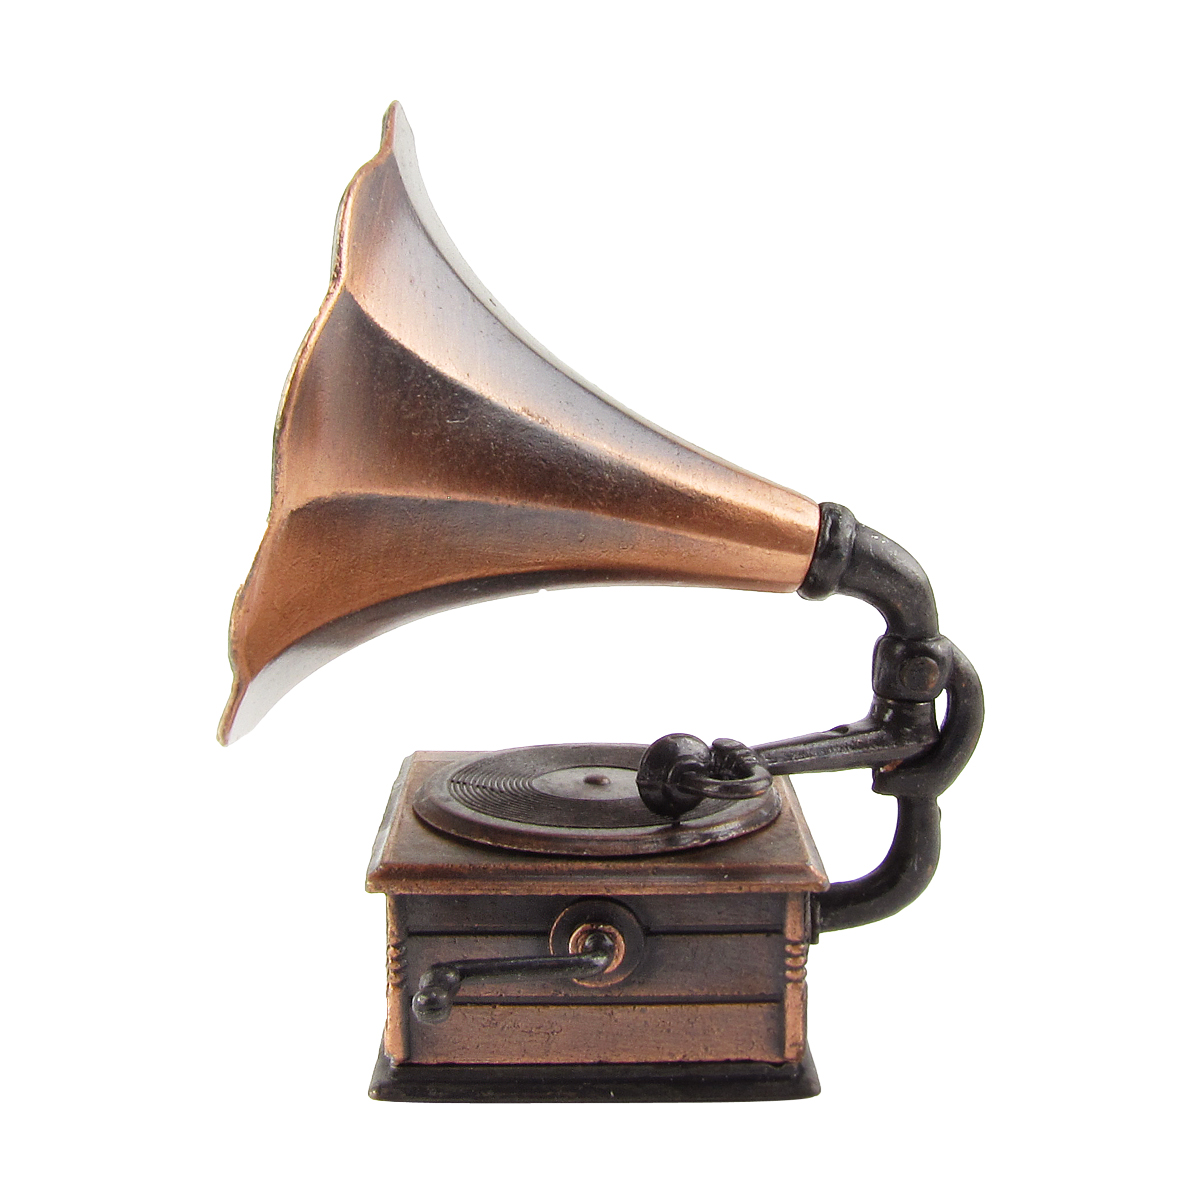 1:12 Scale Miniature Phonograph Dollhouse Accessory Gramophone Pencil Sharpener